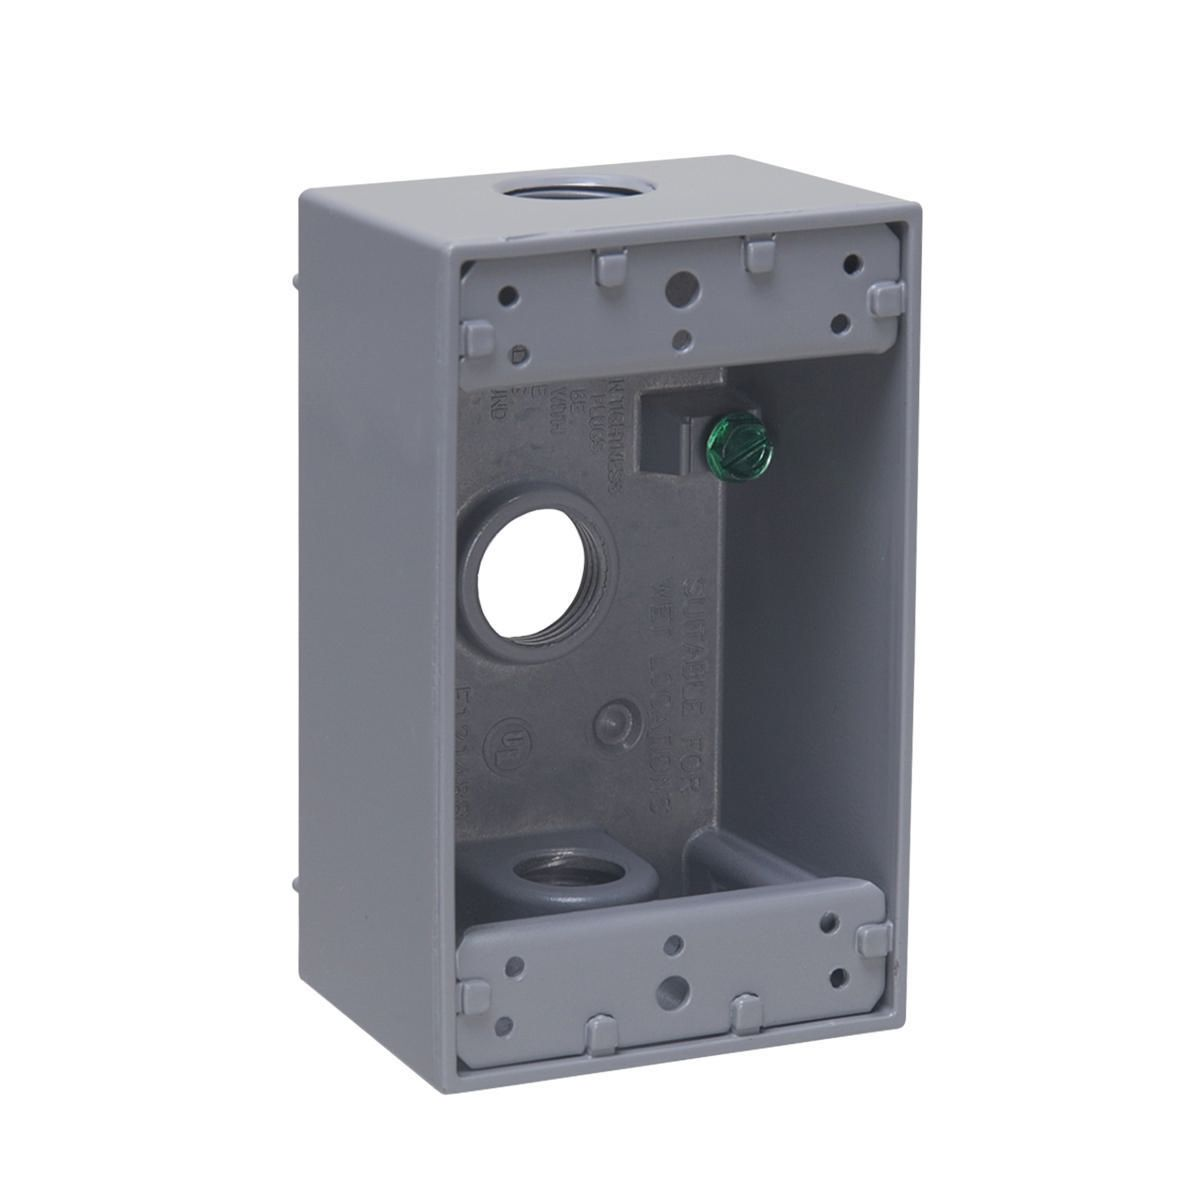 1G WP BOX (3) 1/2 IN. OUTLETS - GRAY